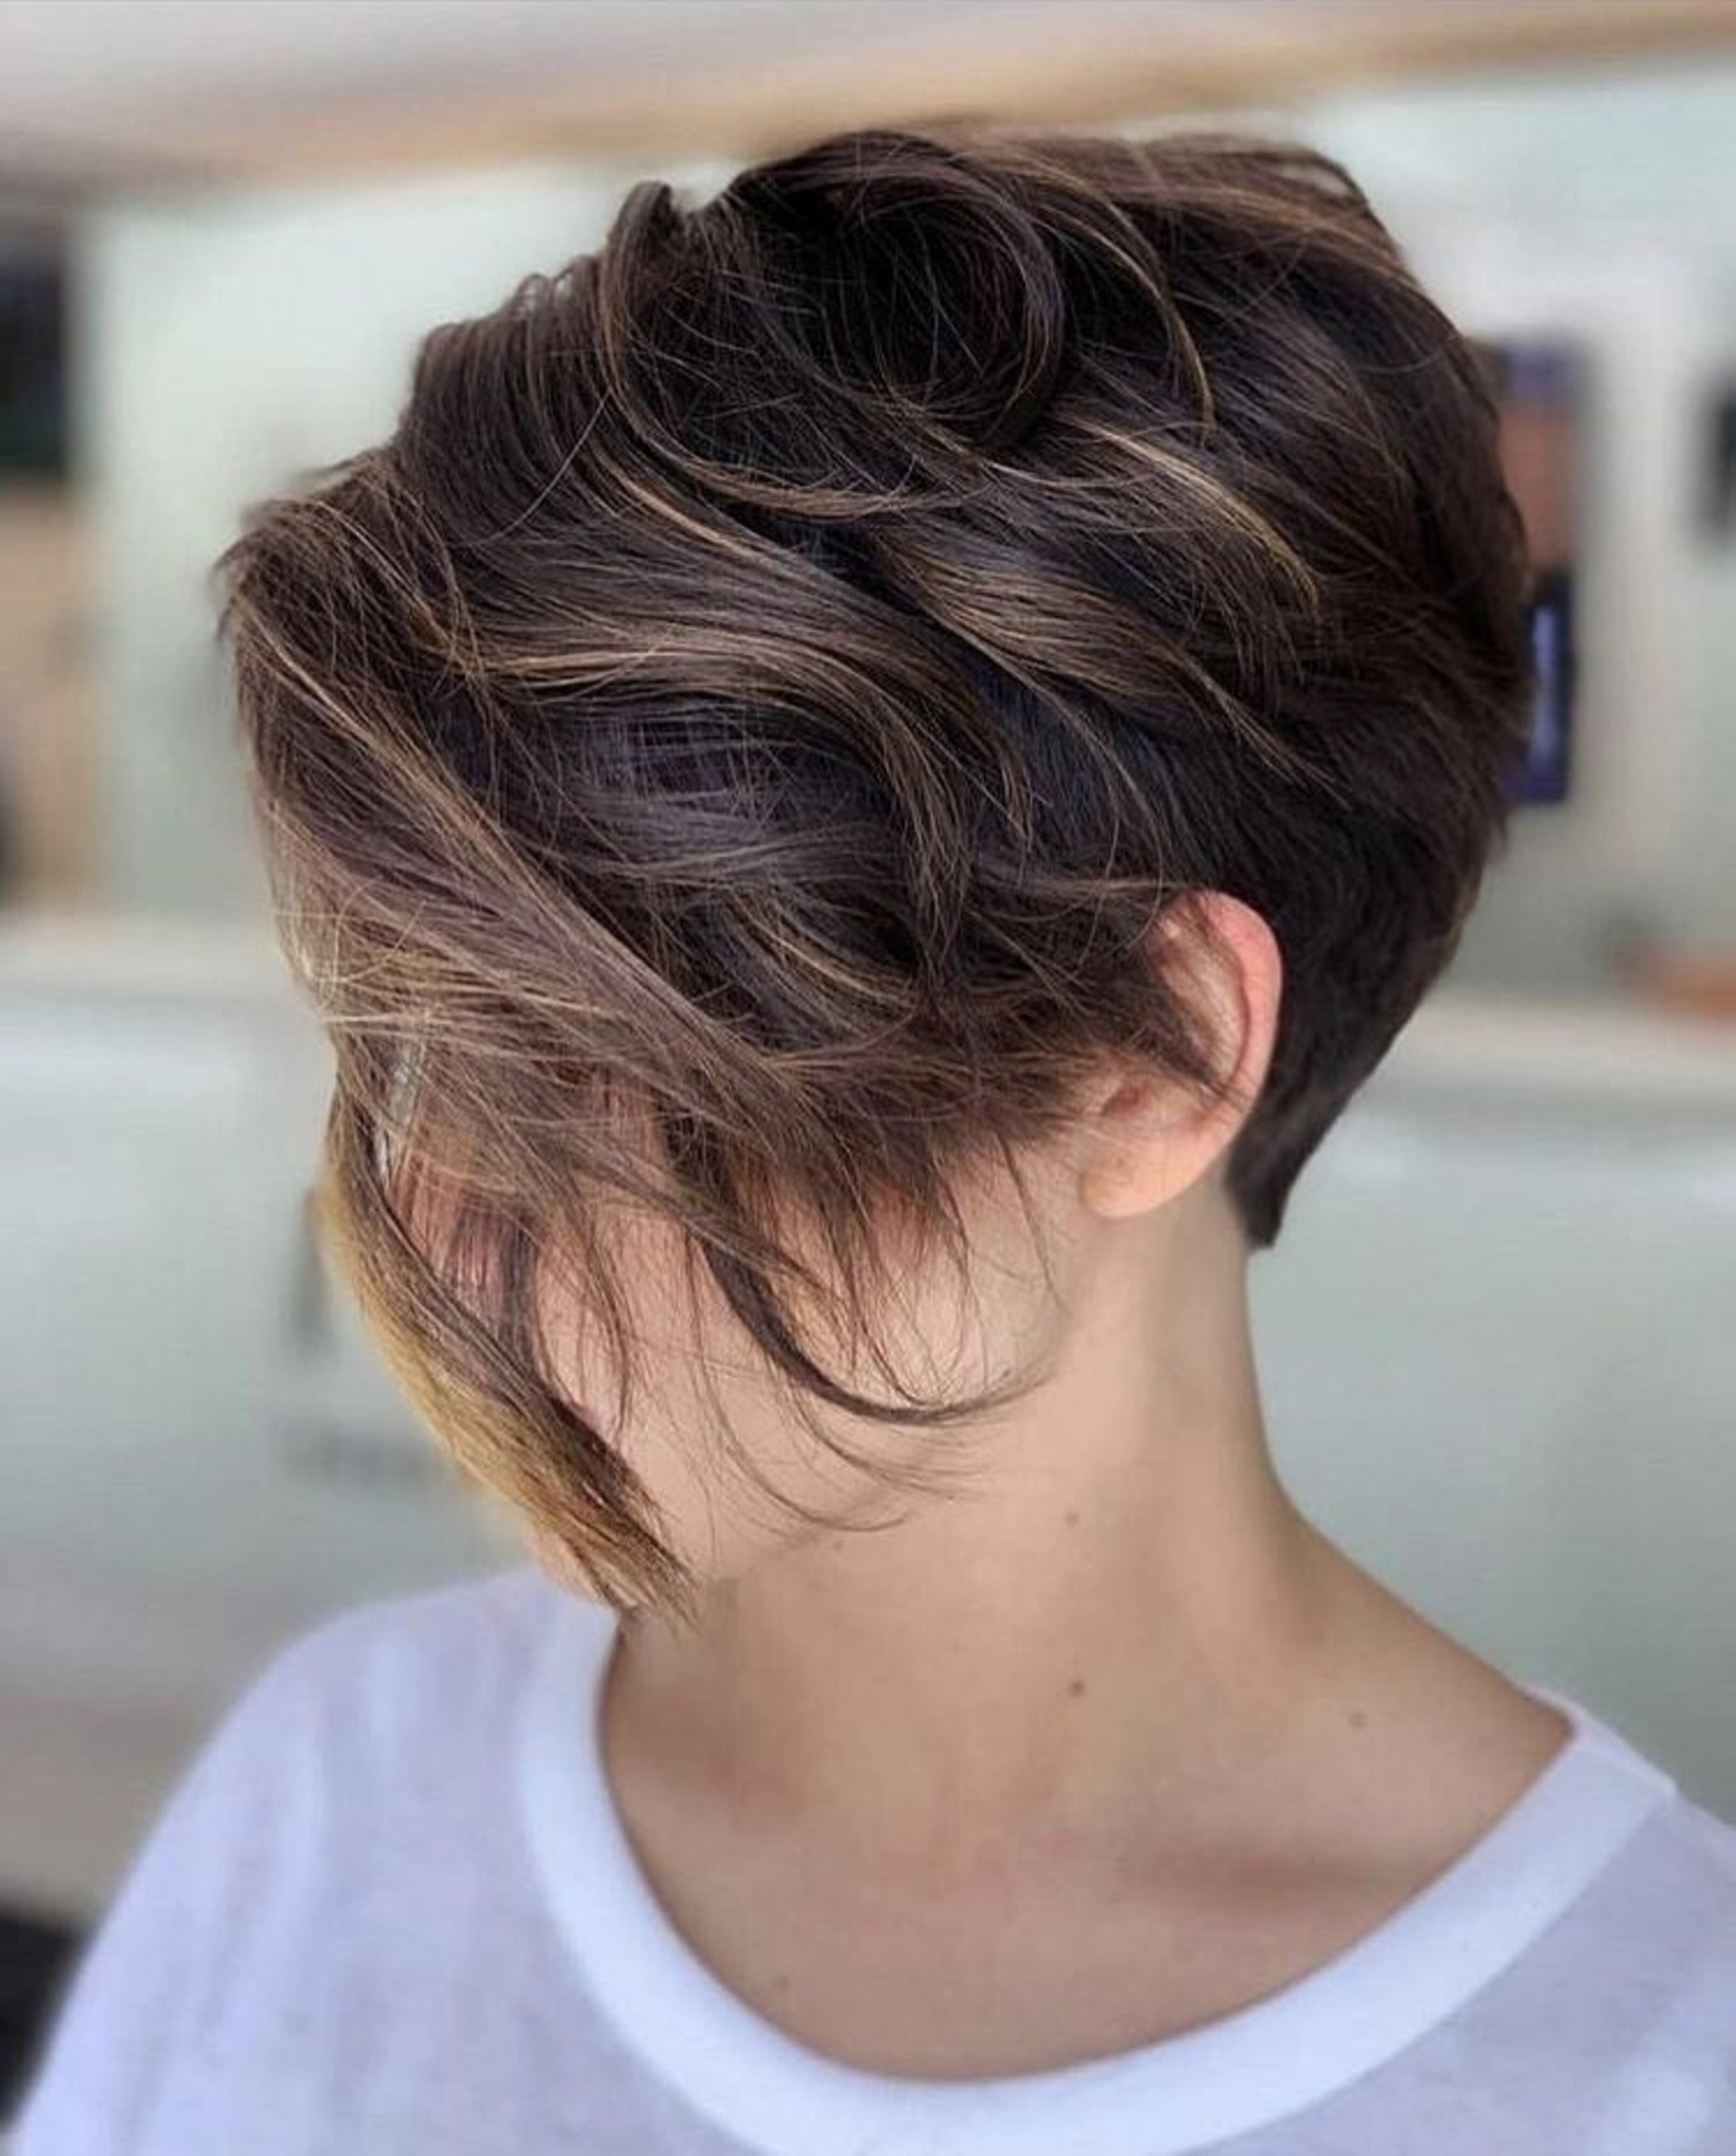 48 Short Pixie Hairstyle Ideas For Young Ladies And Mature In Fashionable Asymmetrical Pixie Hairstyles With Pops Of Color (View 2 of 20)